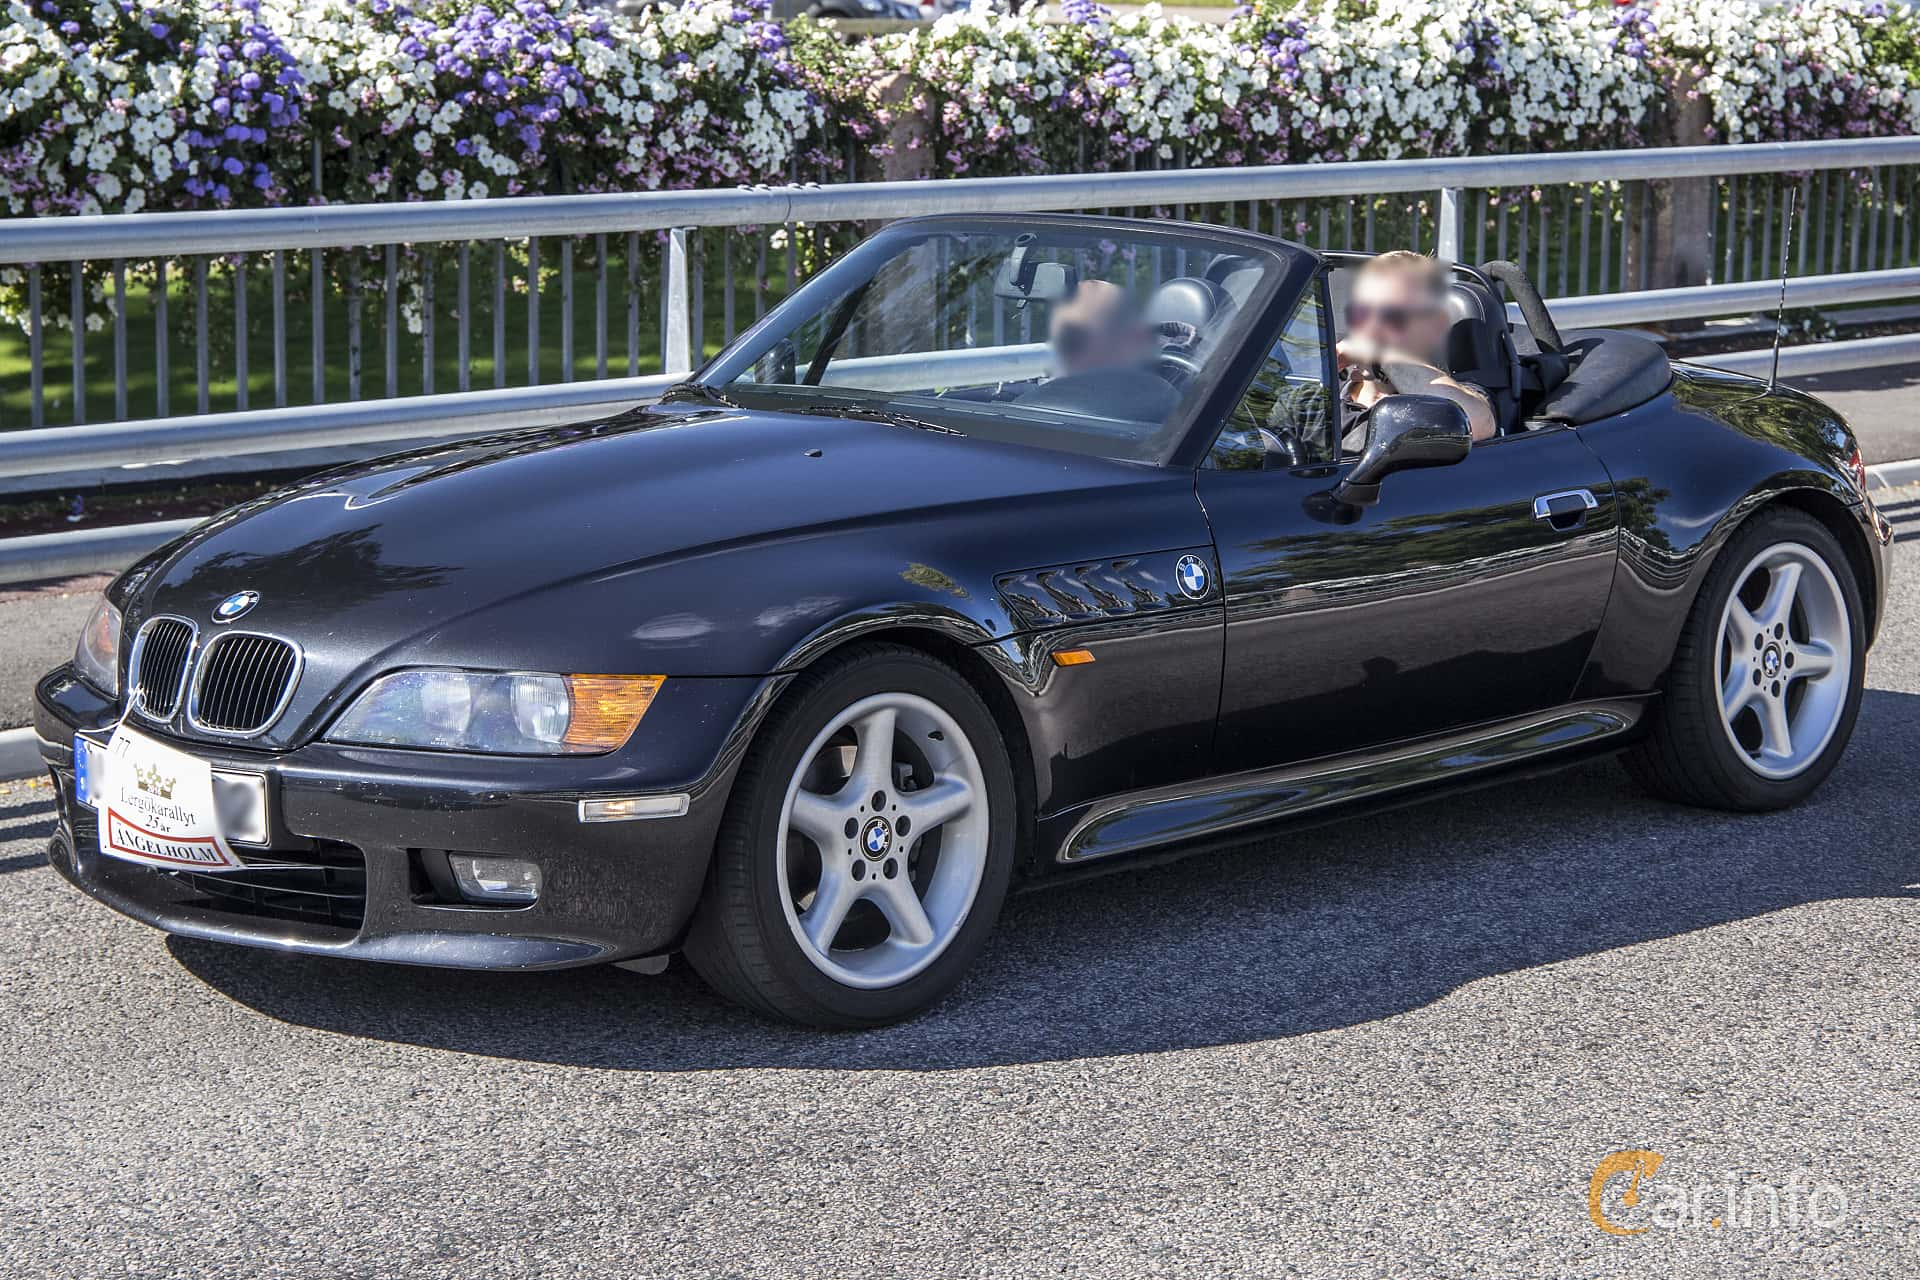 launching the bmw z3 roadster The bmw roadster z3 was introduced for the first time to the public in the central park the company also prepared the ground for the movie launch there were about 200 representatives of the media who were all there to get the first sight on the special effects of this luxurious car.